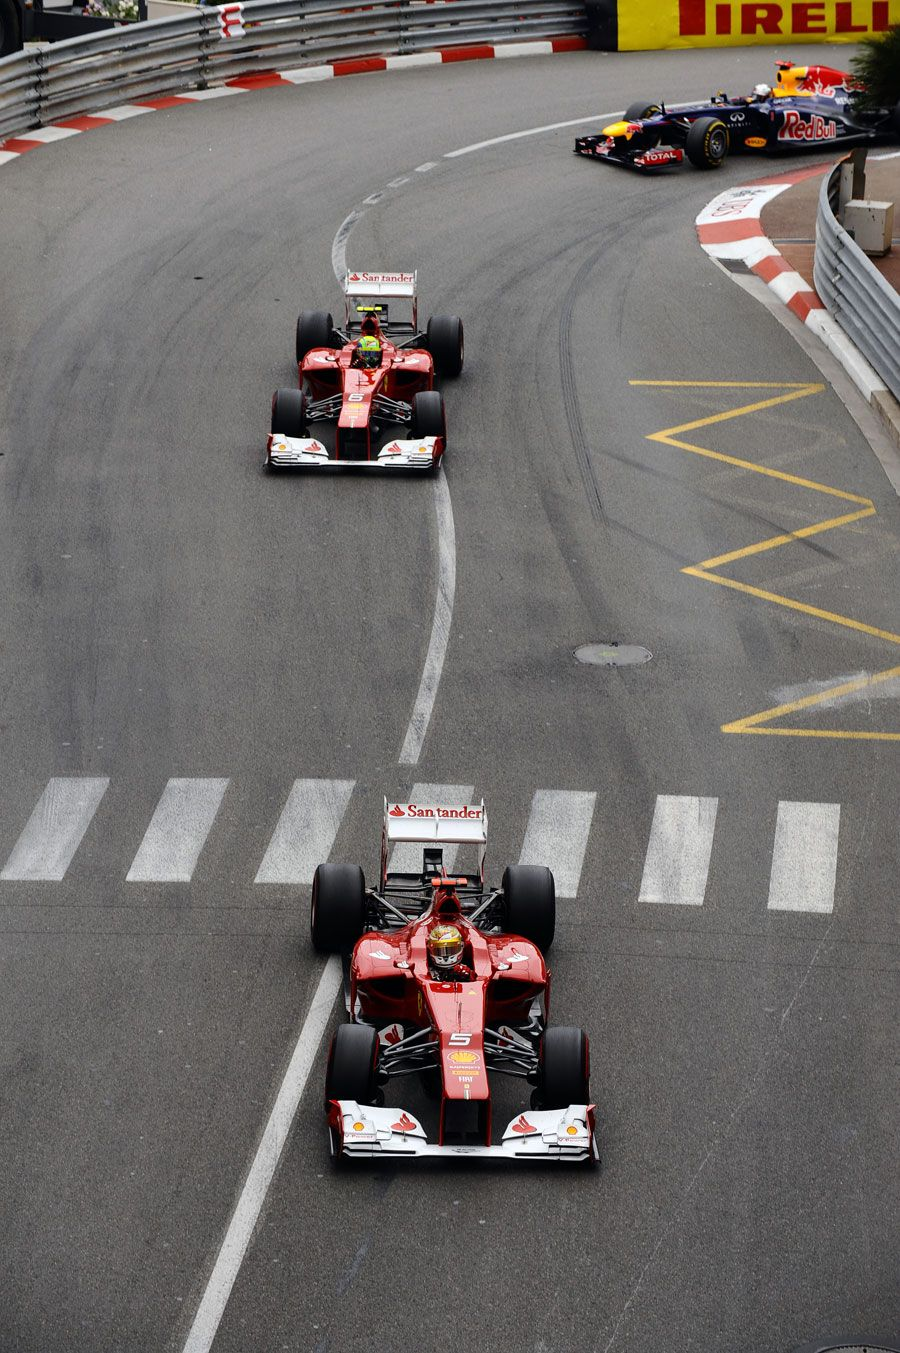 fernando alonso leads felipe massa and sebastian vettel monaco grand prix monte carlo may 27. Black Bedroom Furniture Sets. Home Design Ideas